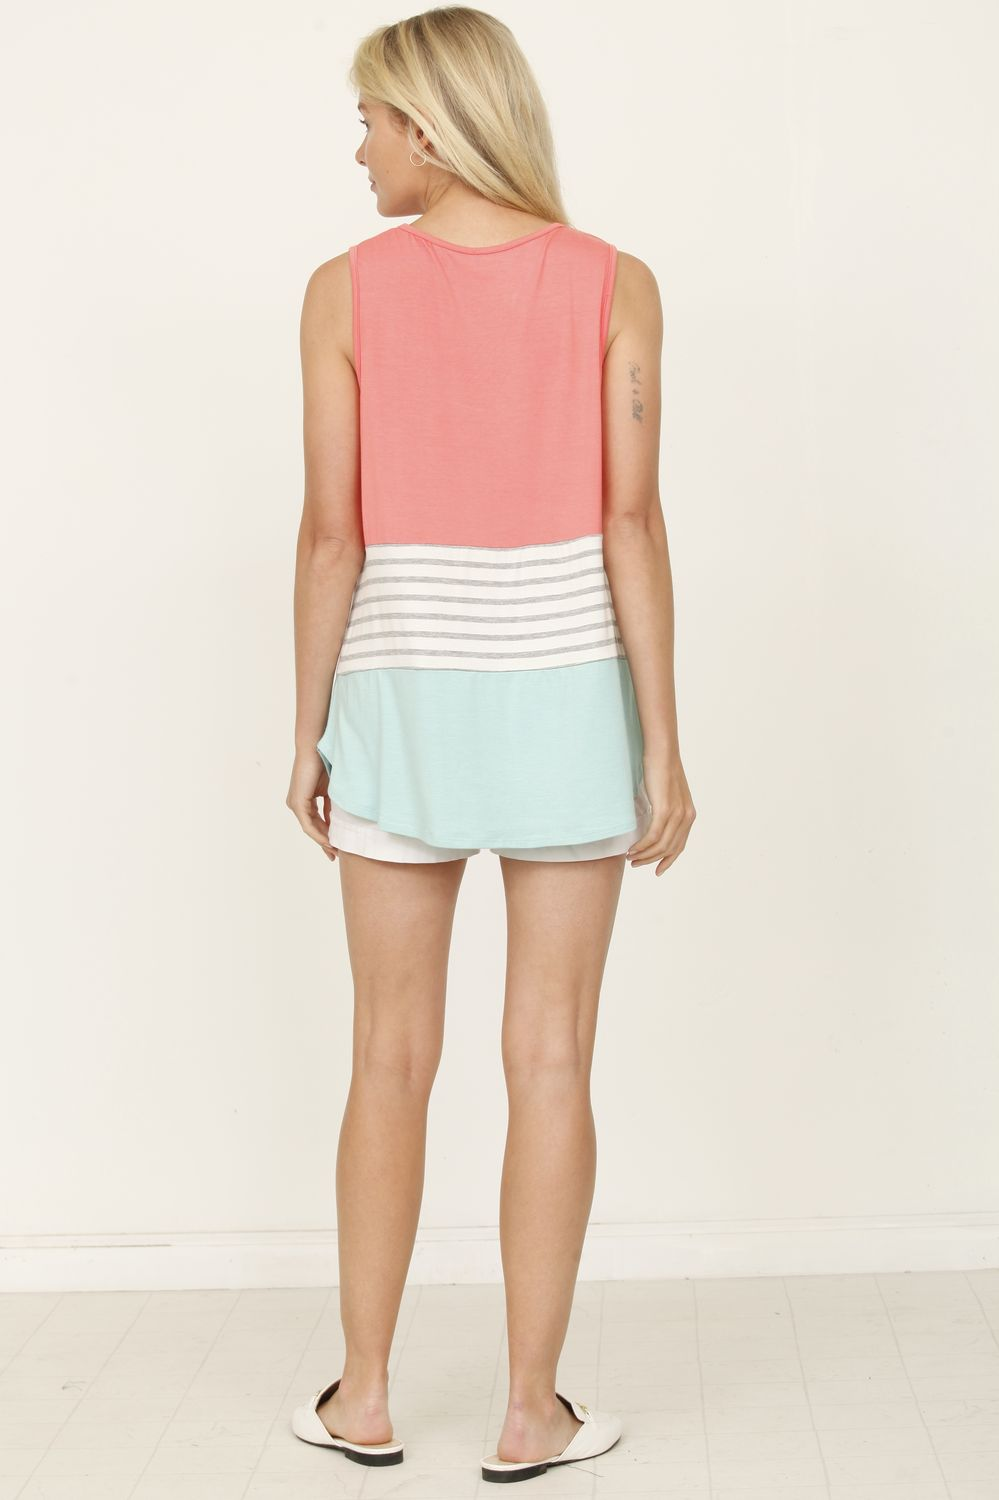 Coral & Mint Sleeveless Color-Block Top